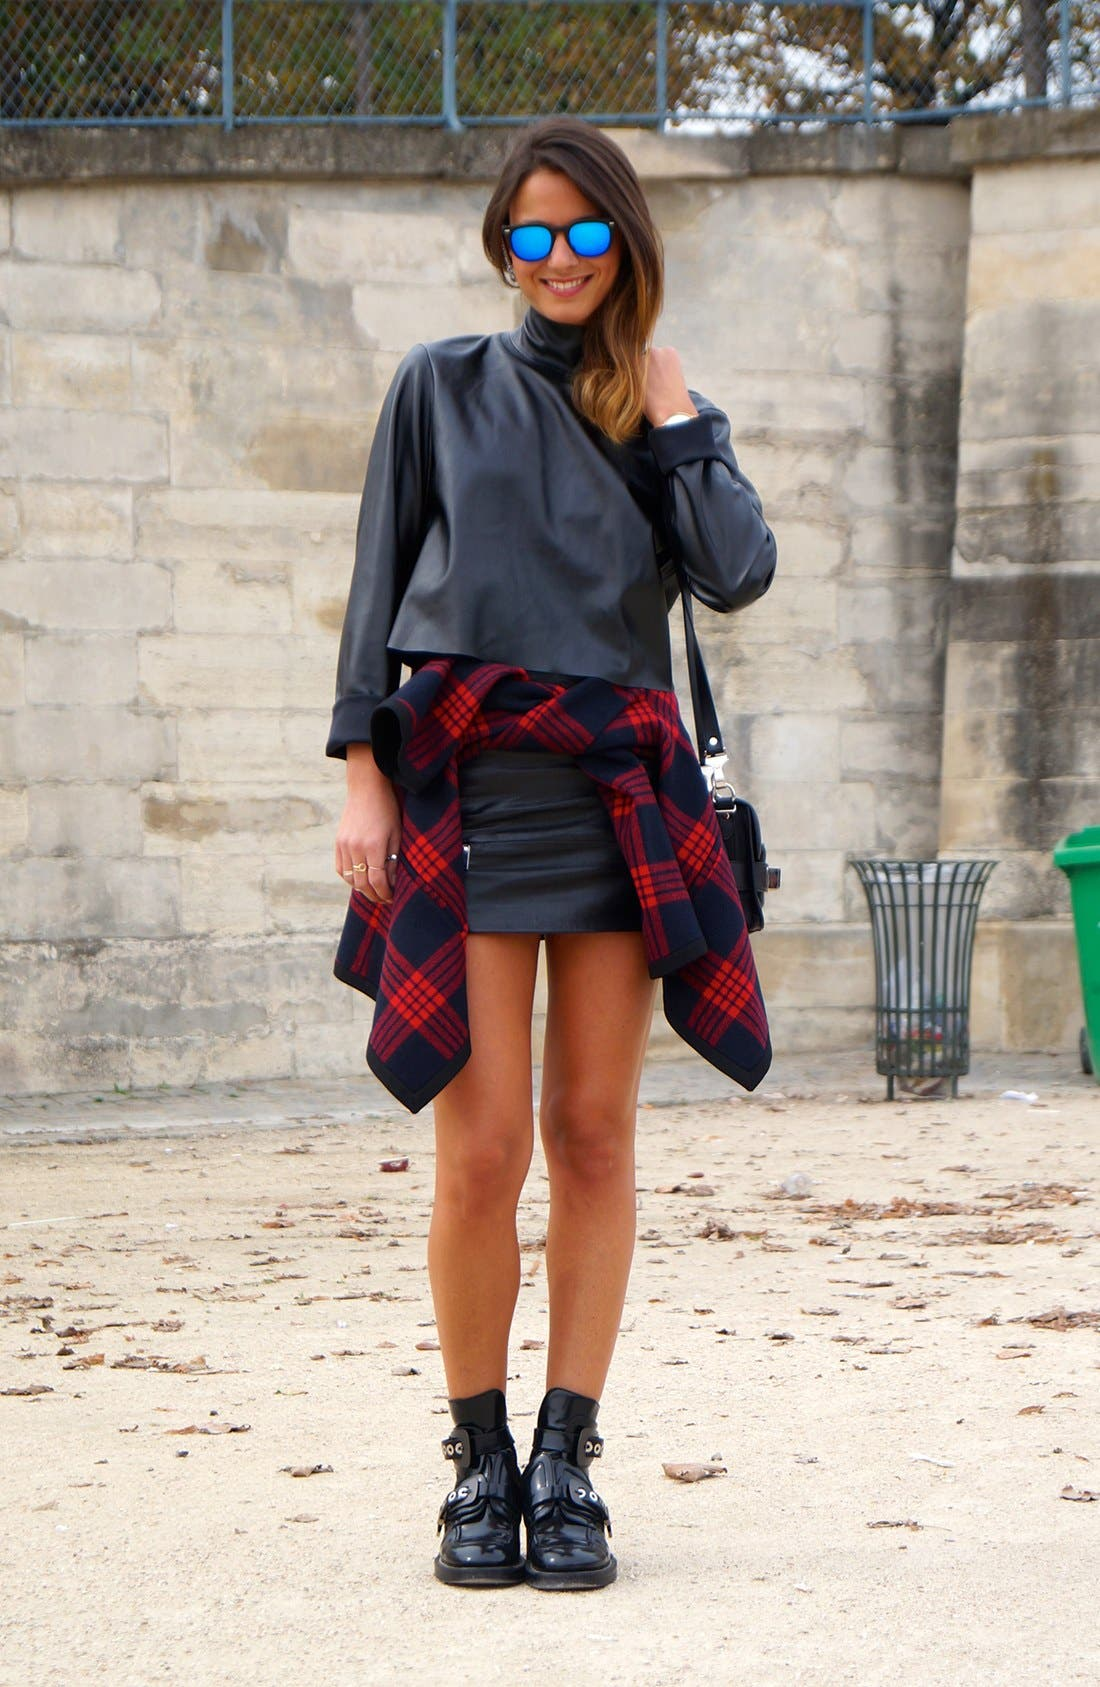 Alternate Image 1 Selected - The Leather Mini Street Style Look